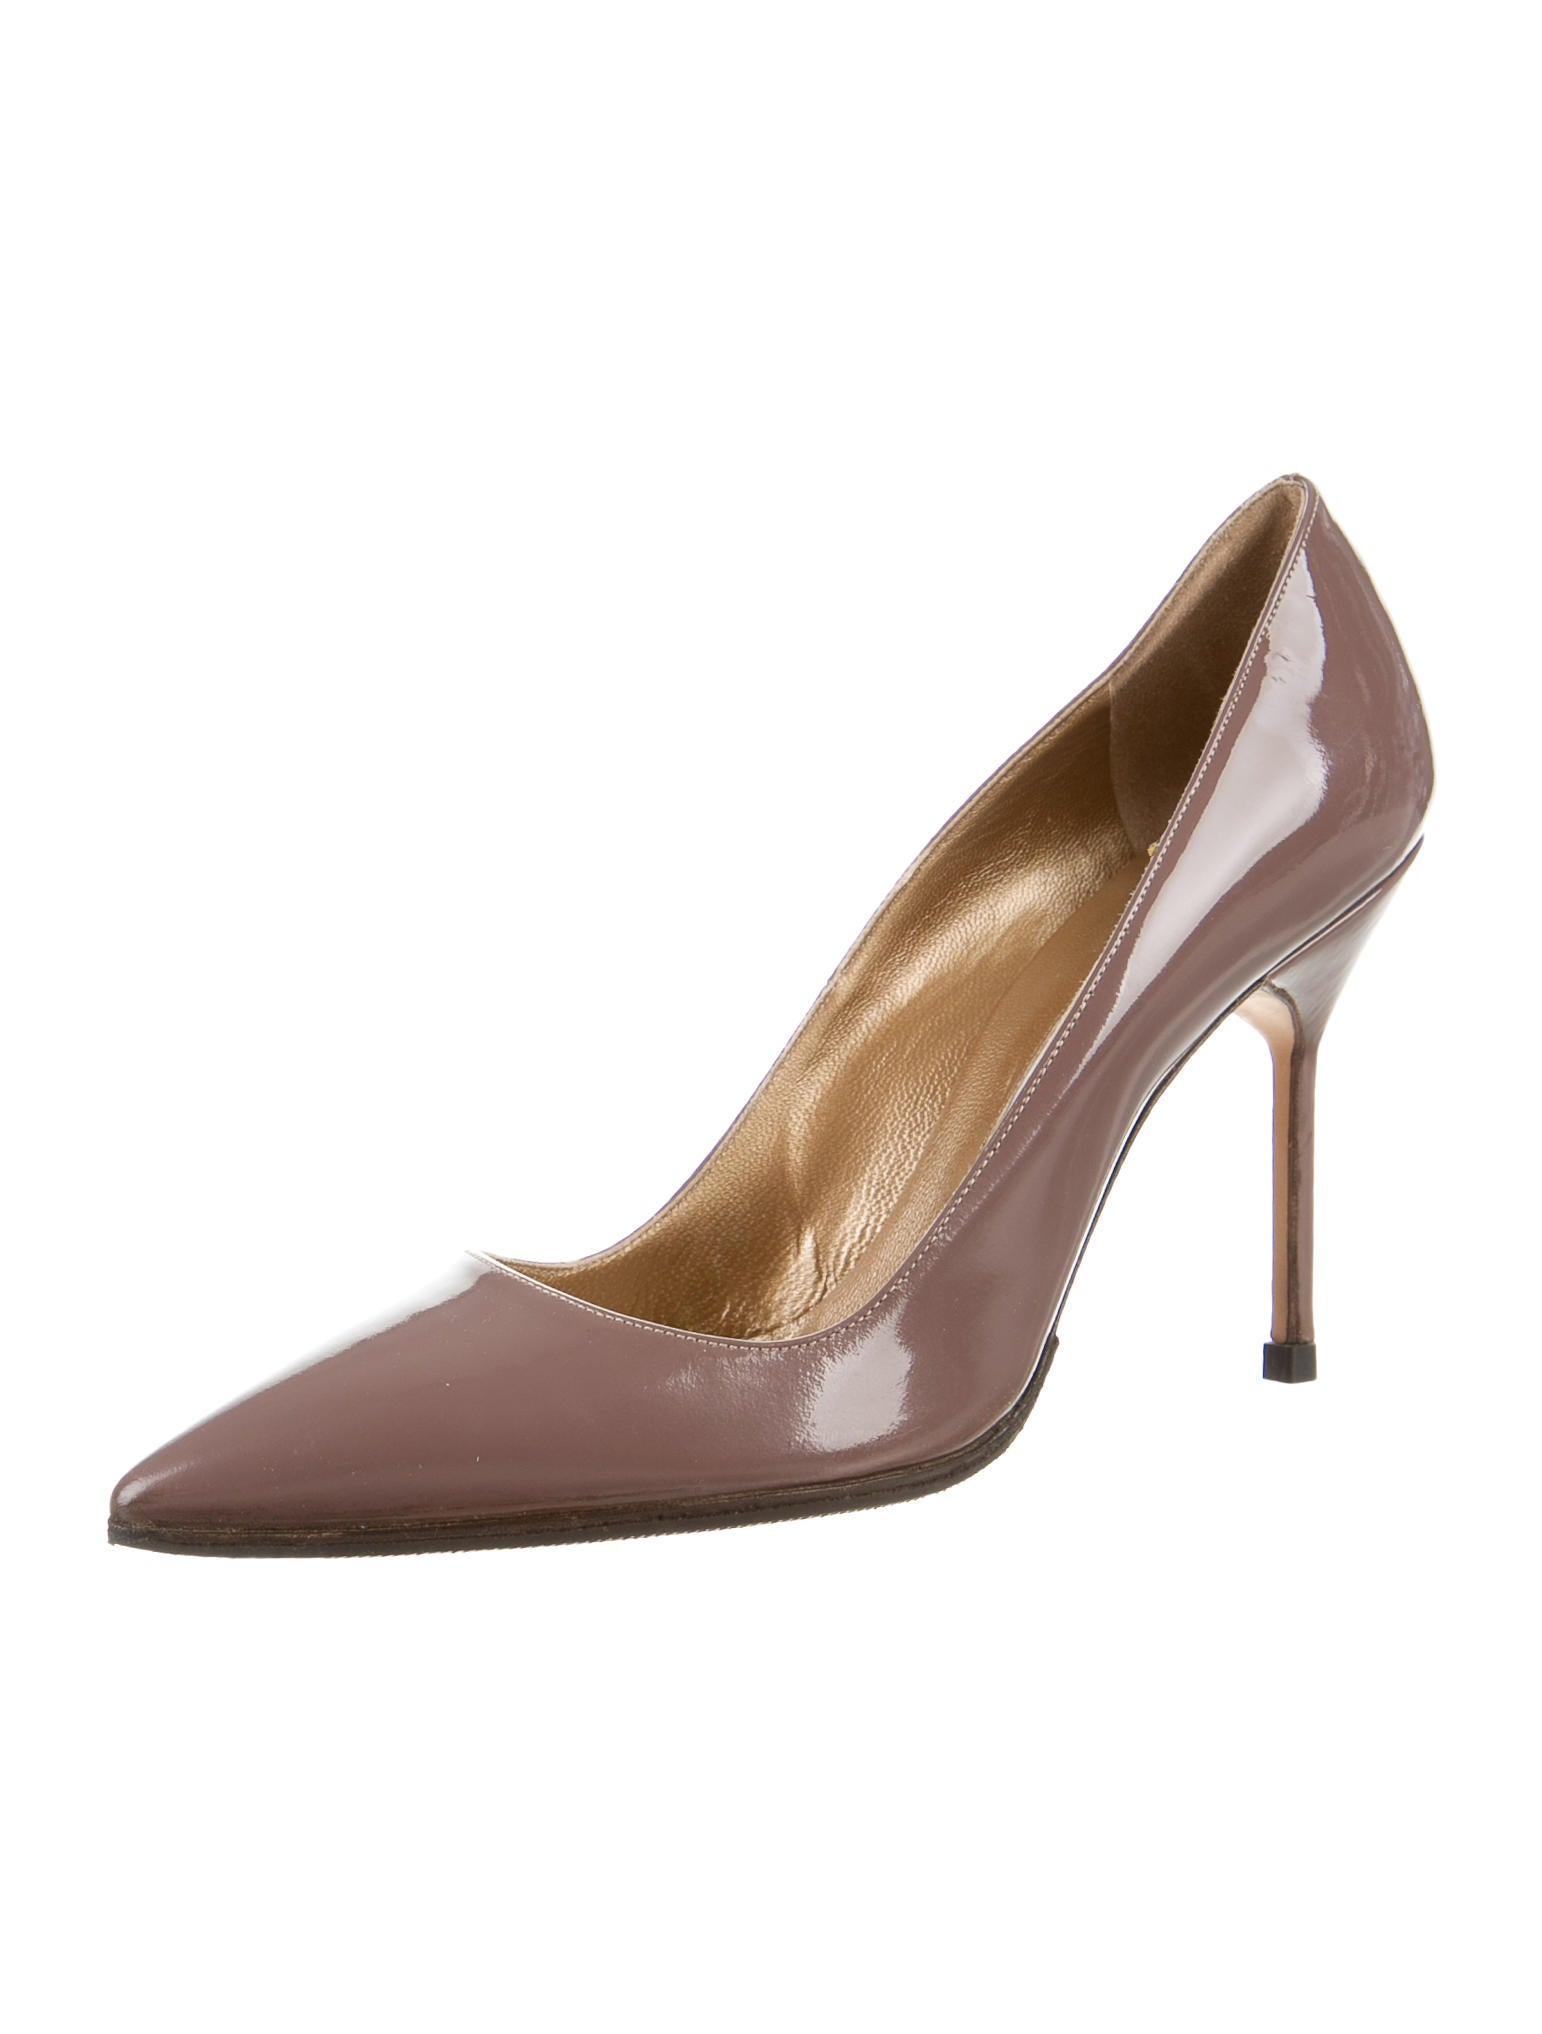 Manolo blahnik patent leather pumps shoes moo51292 for Shoes by manolo blahnik